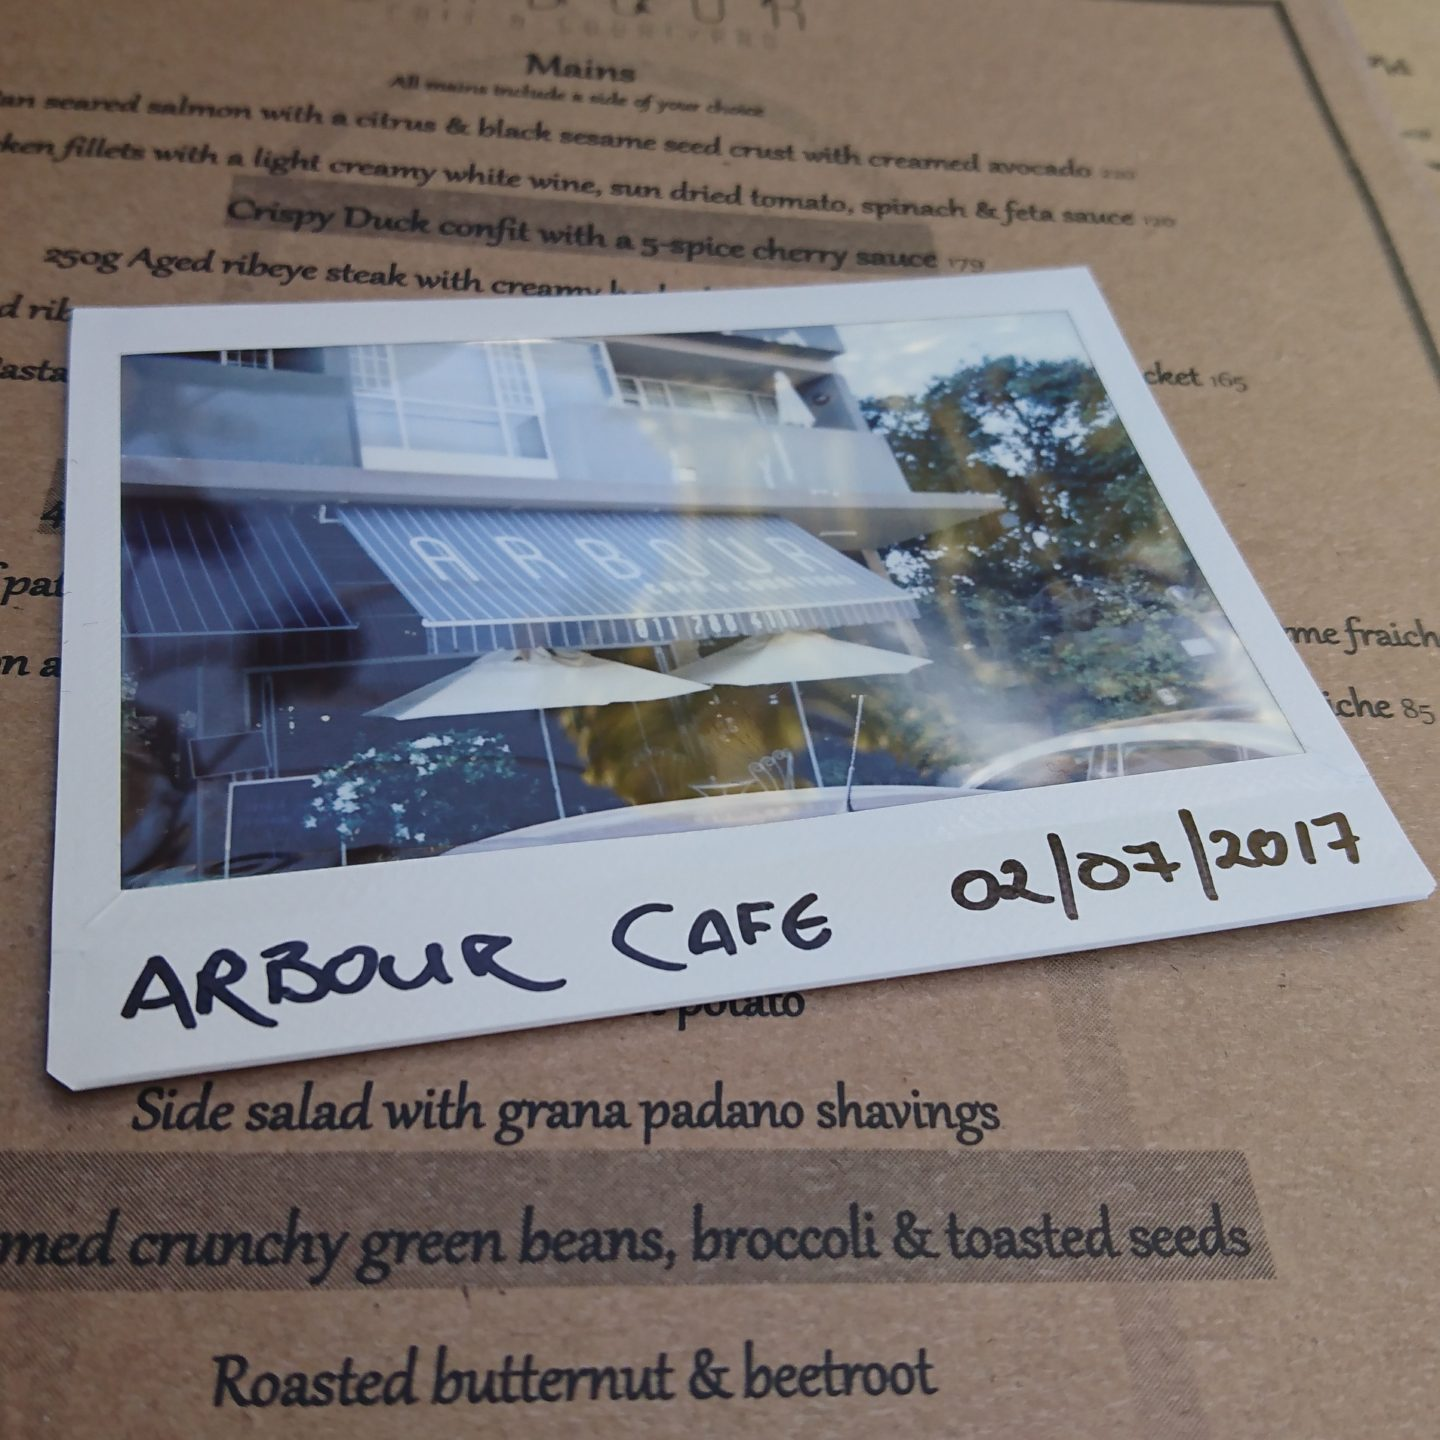 Arbour Café and Courtyard:  The Secret Garden